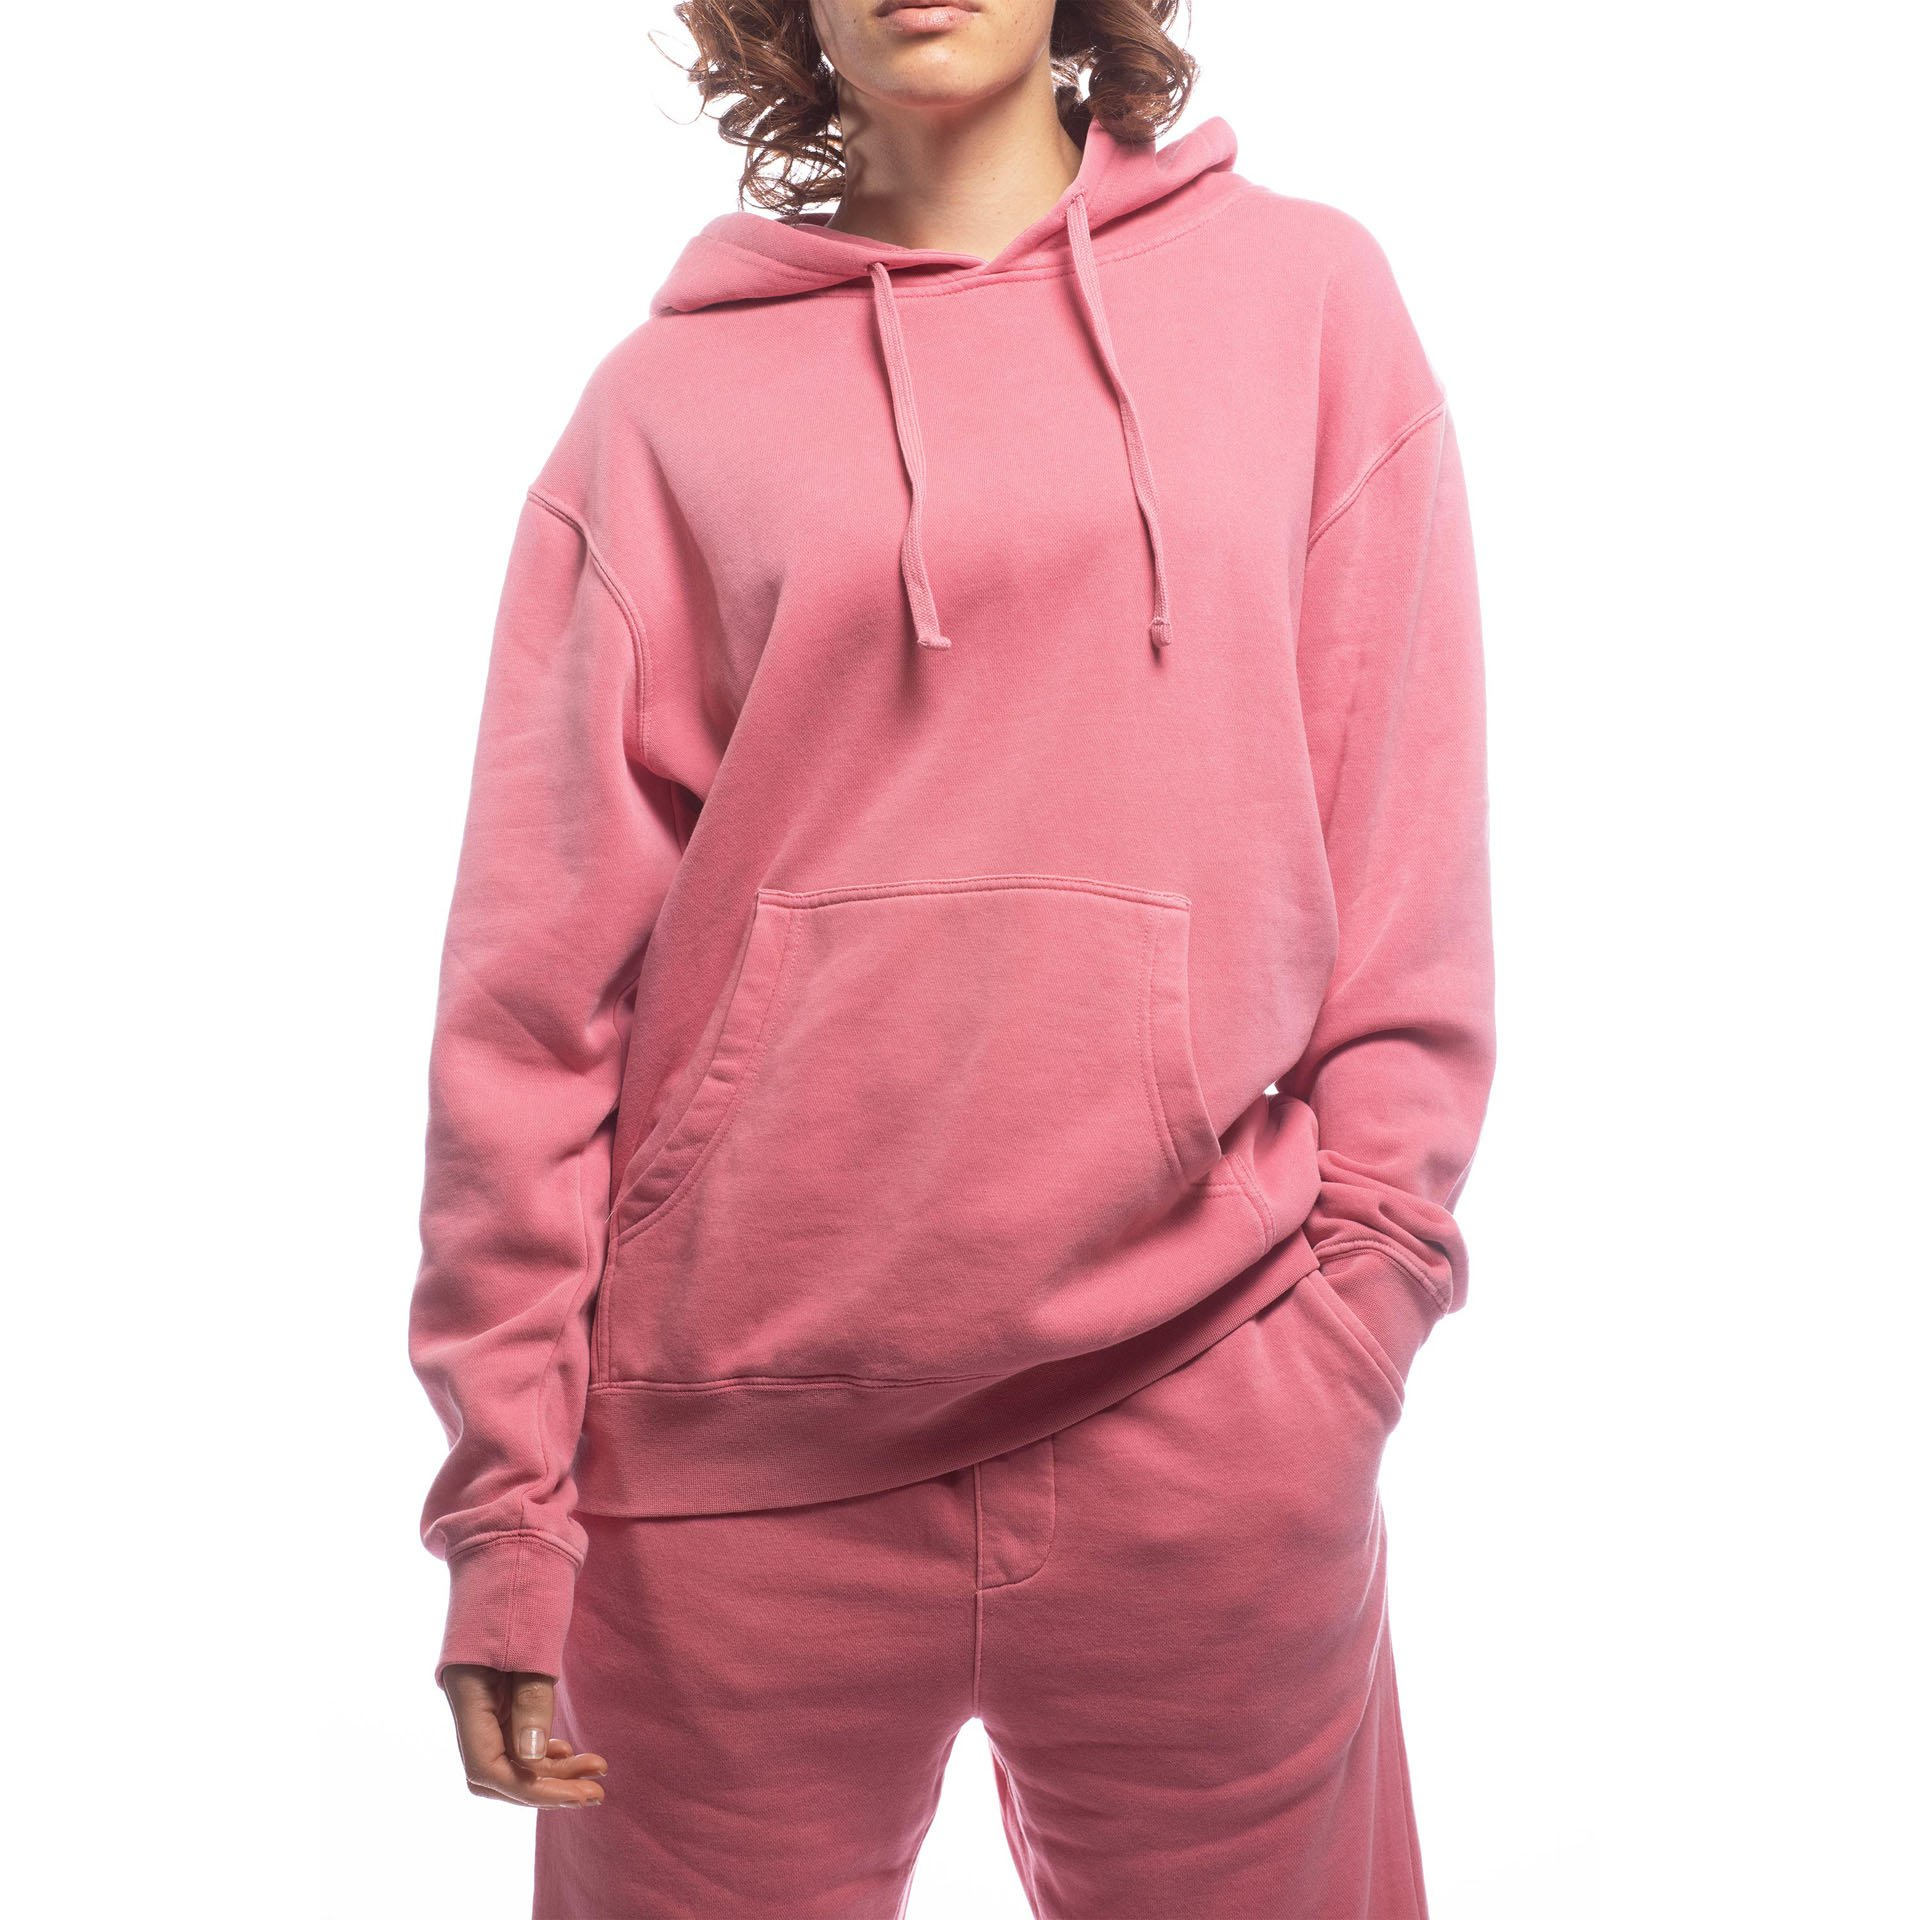 Unisex Upcycled Hoodie - Made For The People - Pink